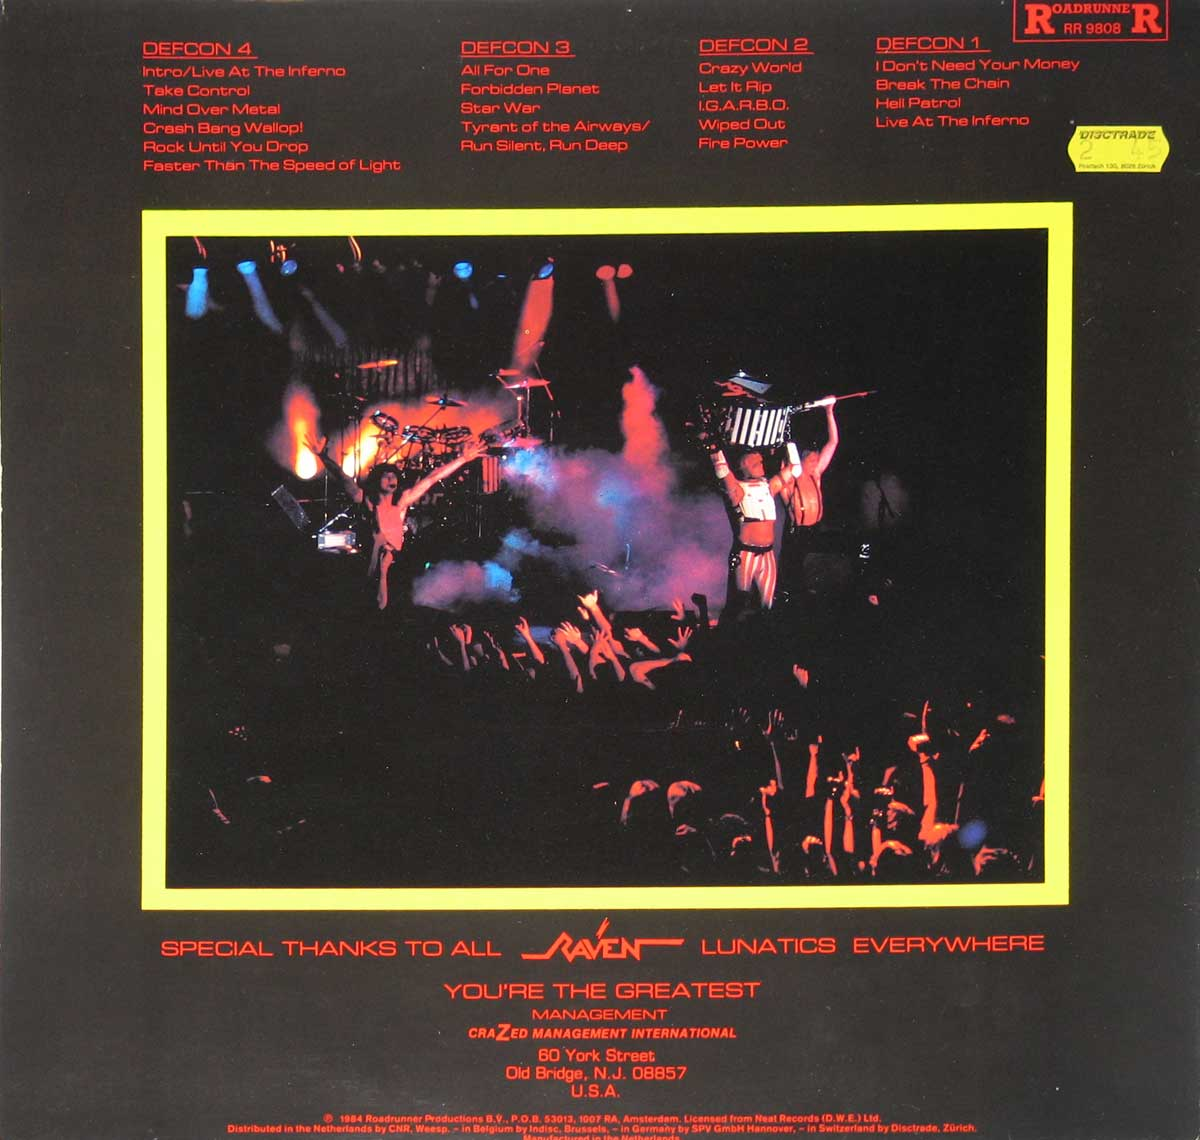 High Resolution Photo Album Back Cover of RAVEN - Live at the Inferno https://vinyl-records.nl